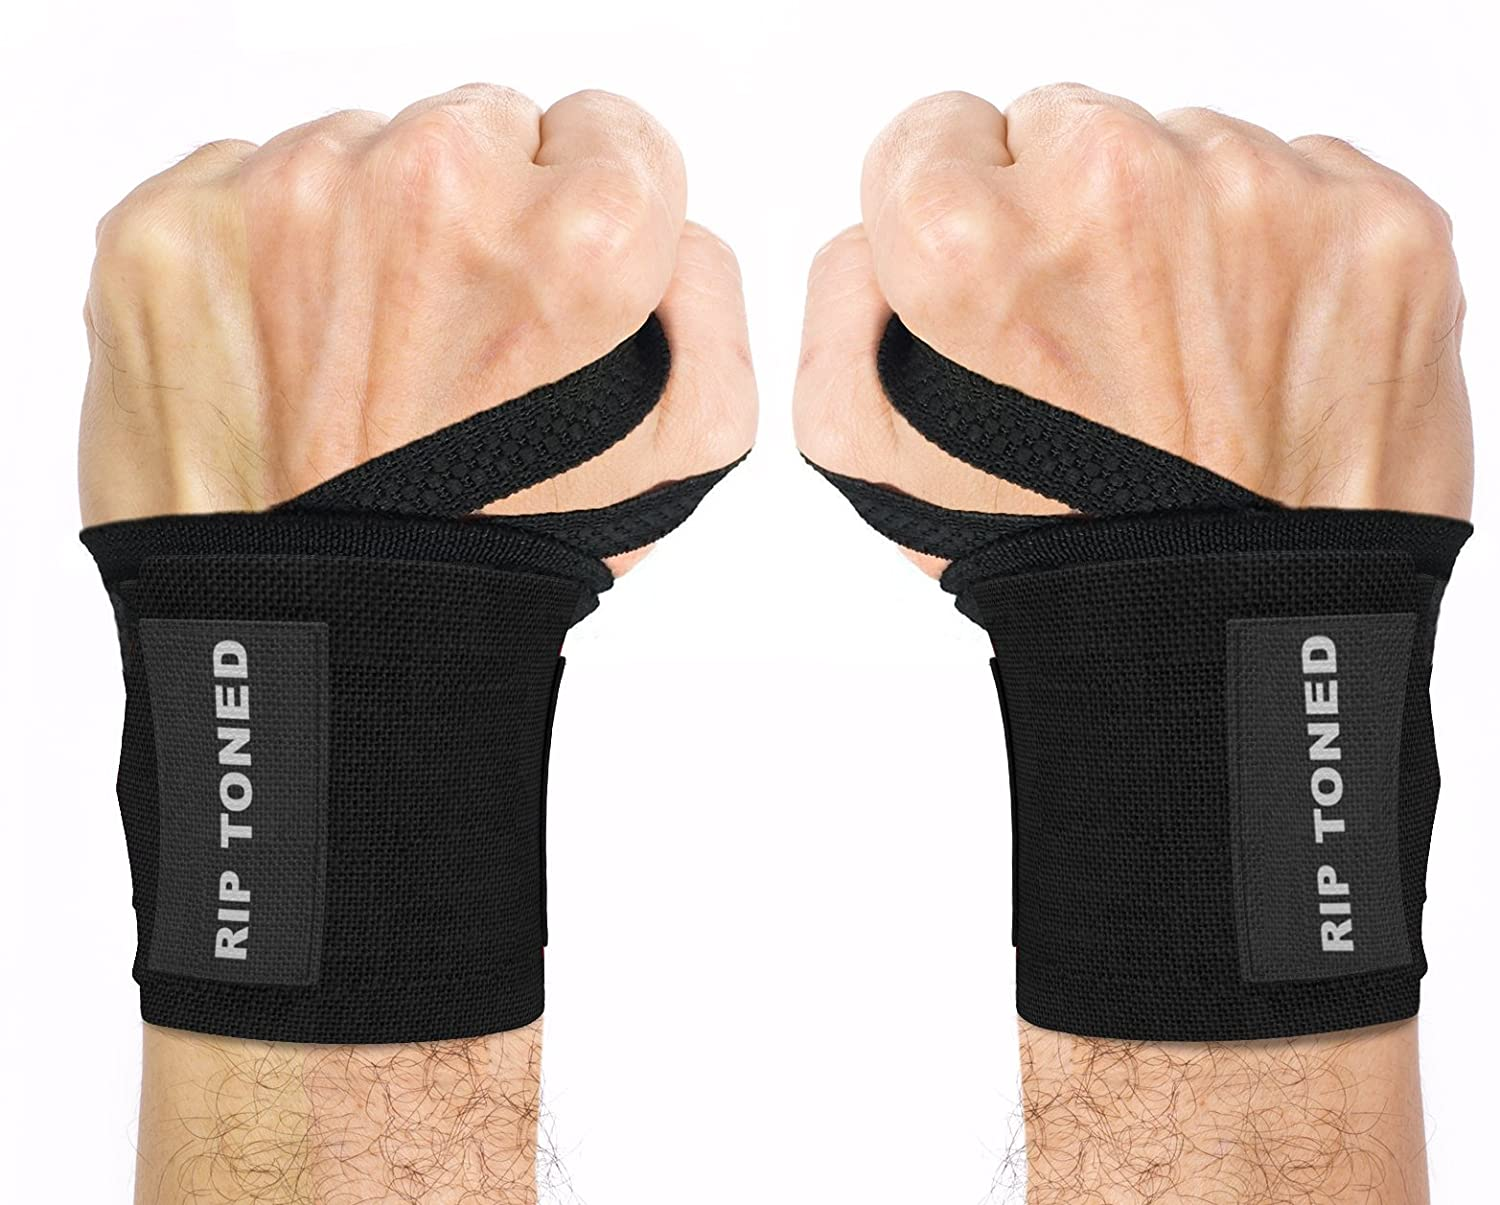 The 6 Best Wrist Supports for CrossFit in 2018 - Rip Toned Wrist Wraps